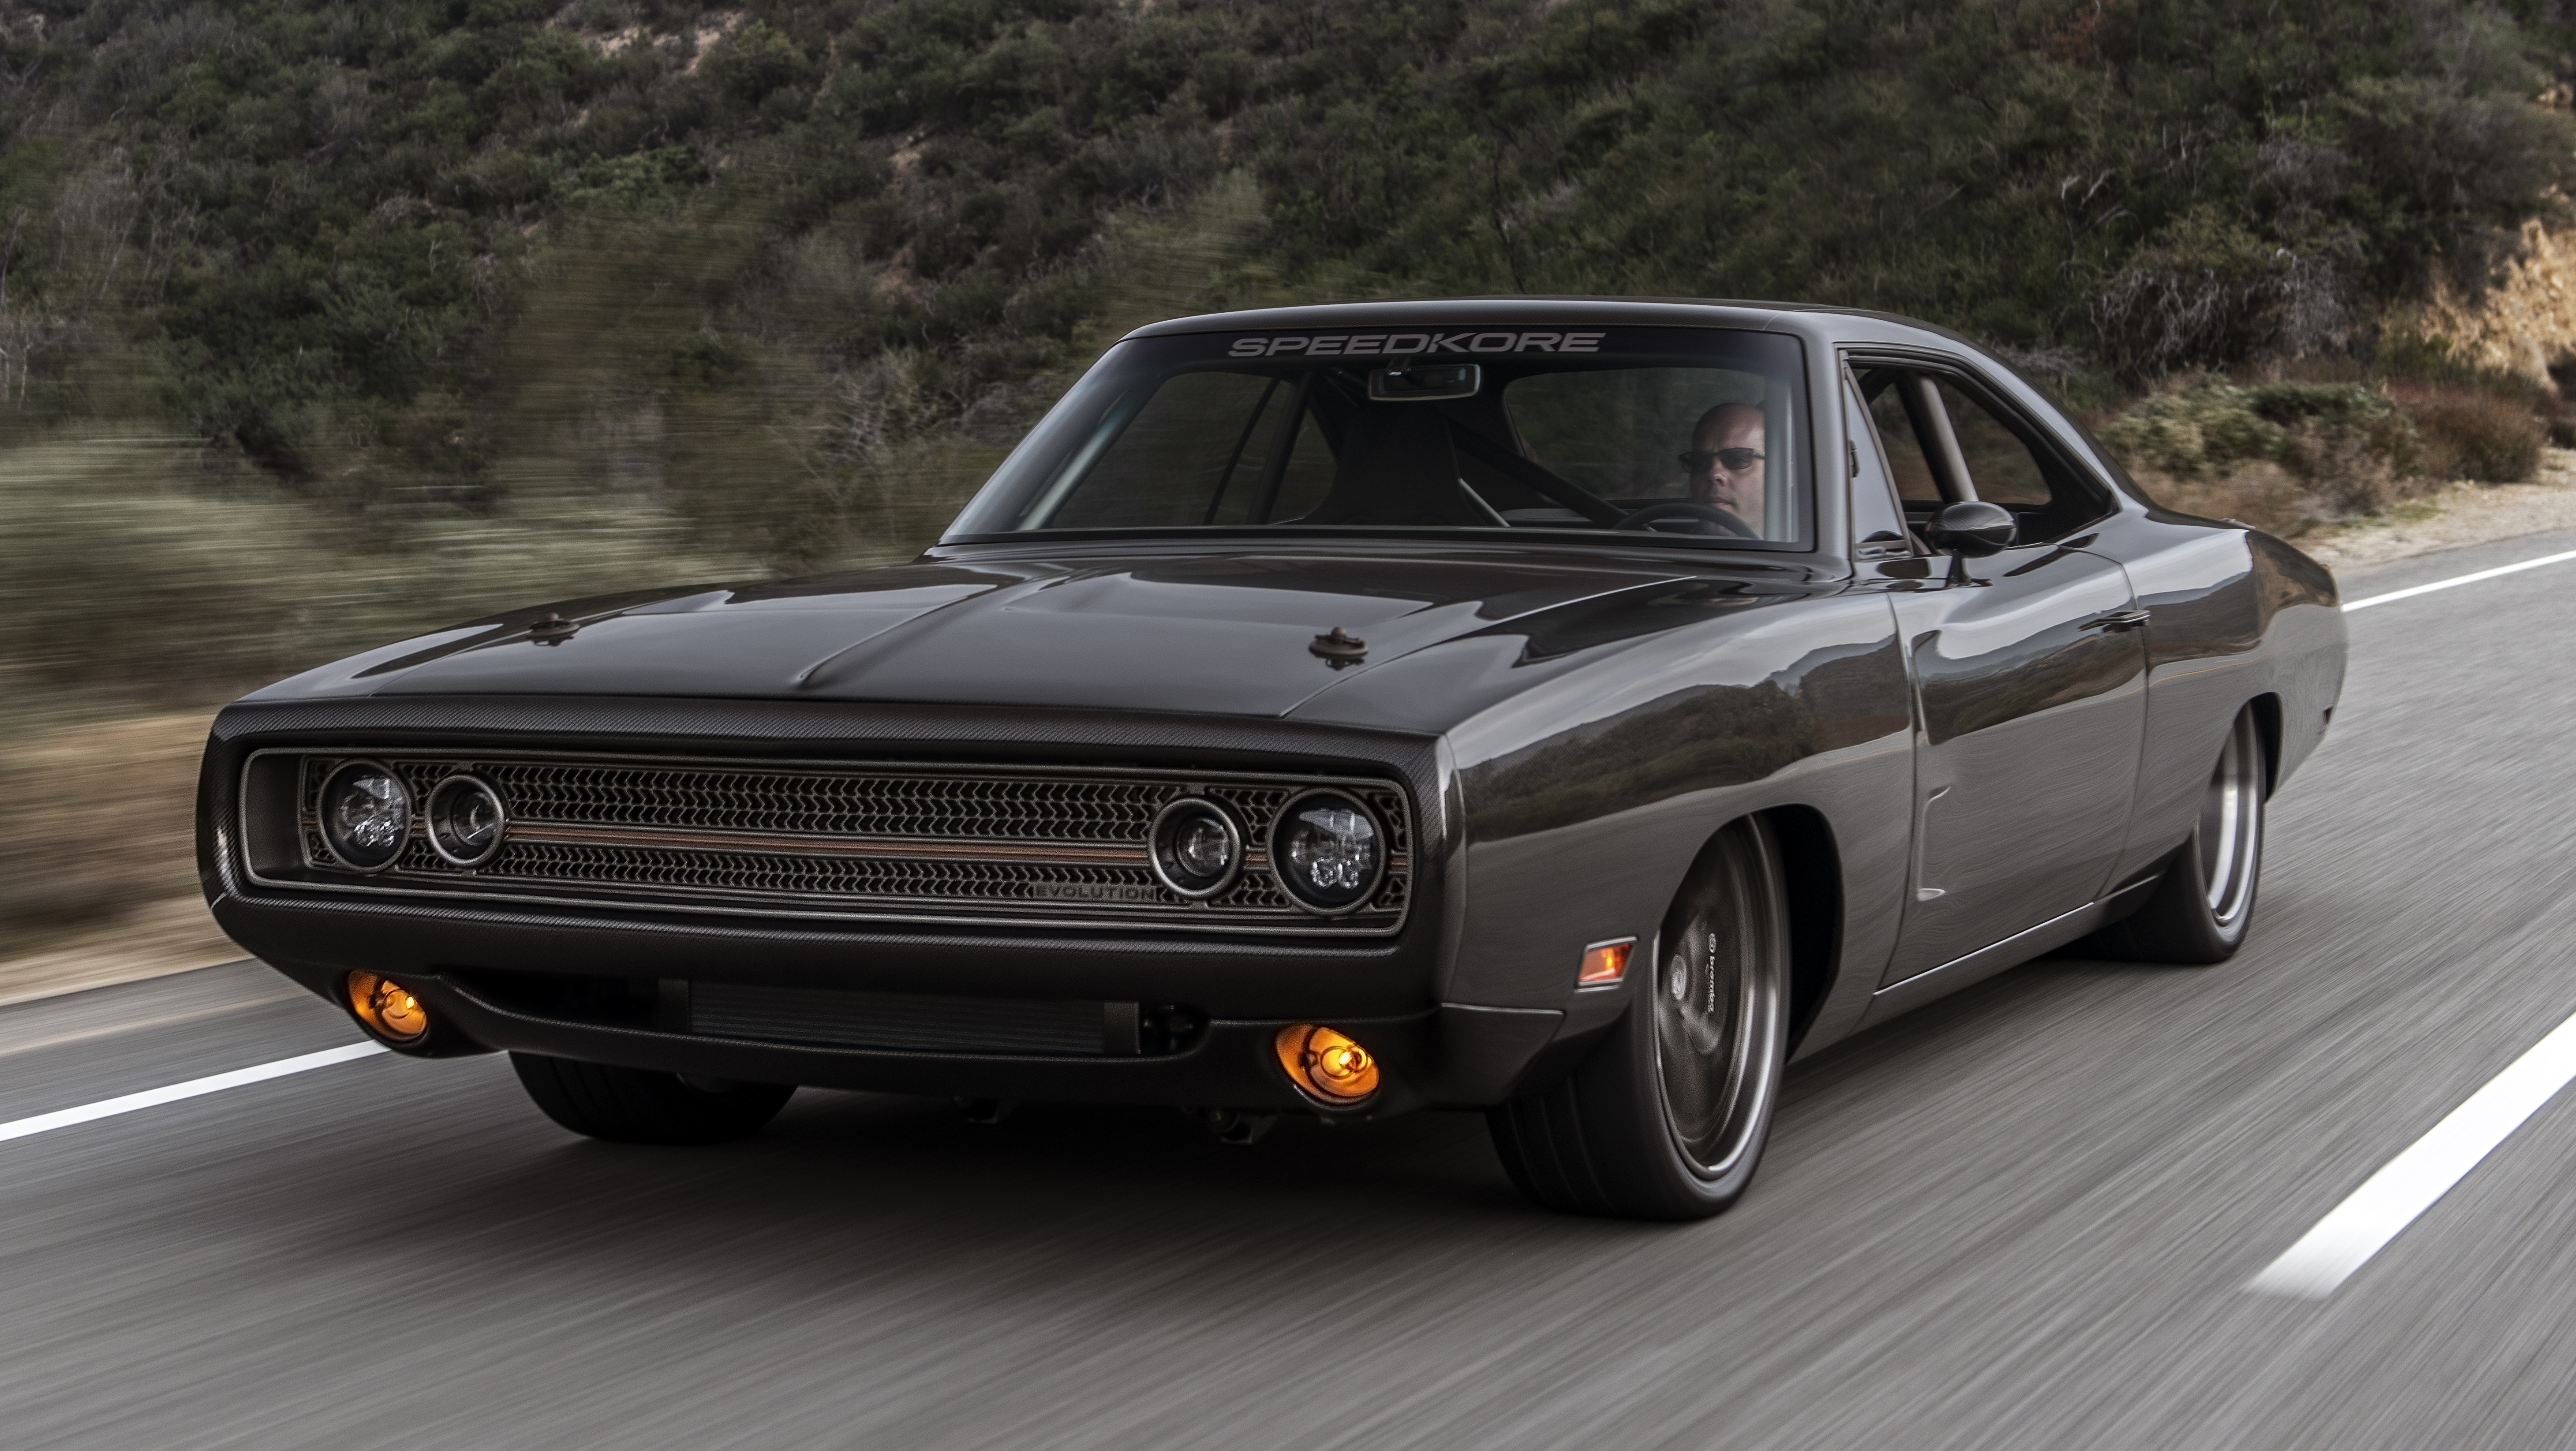 SpeedKore's Dodge Charger Evolution Featured On